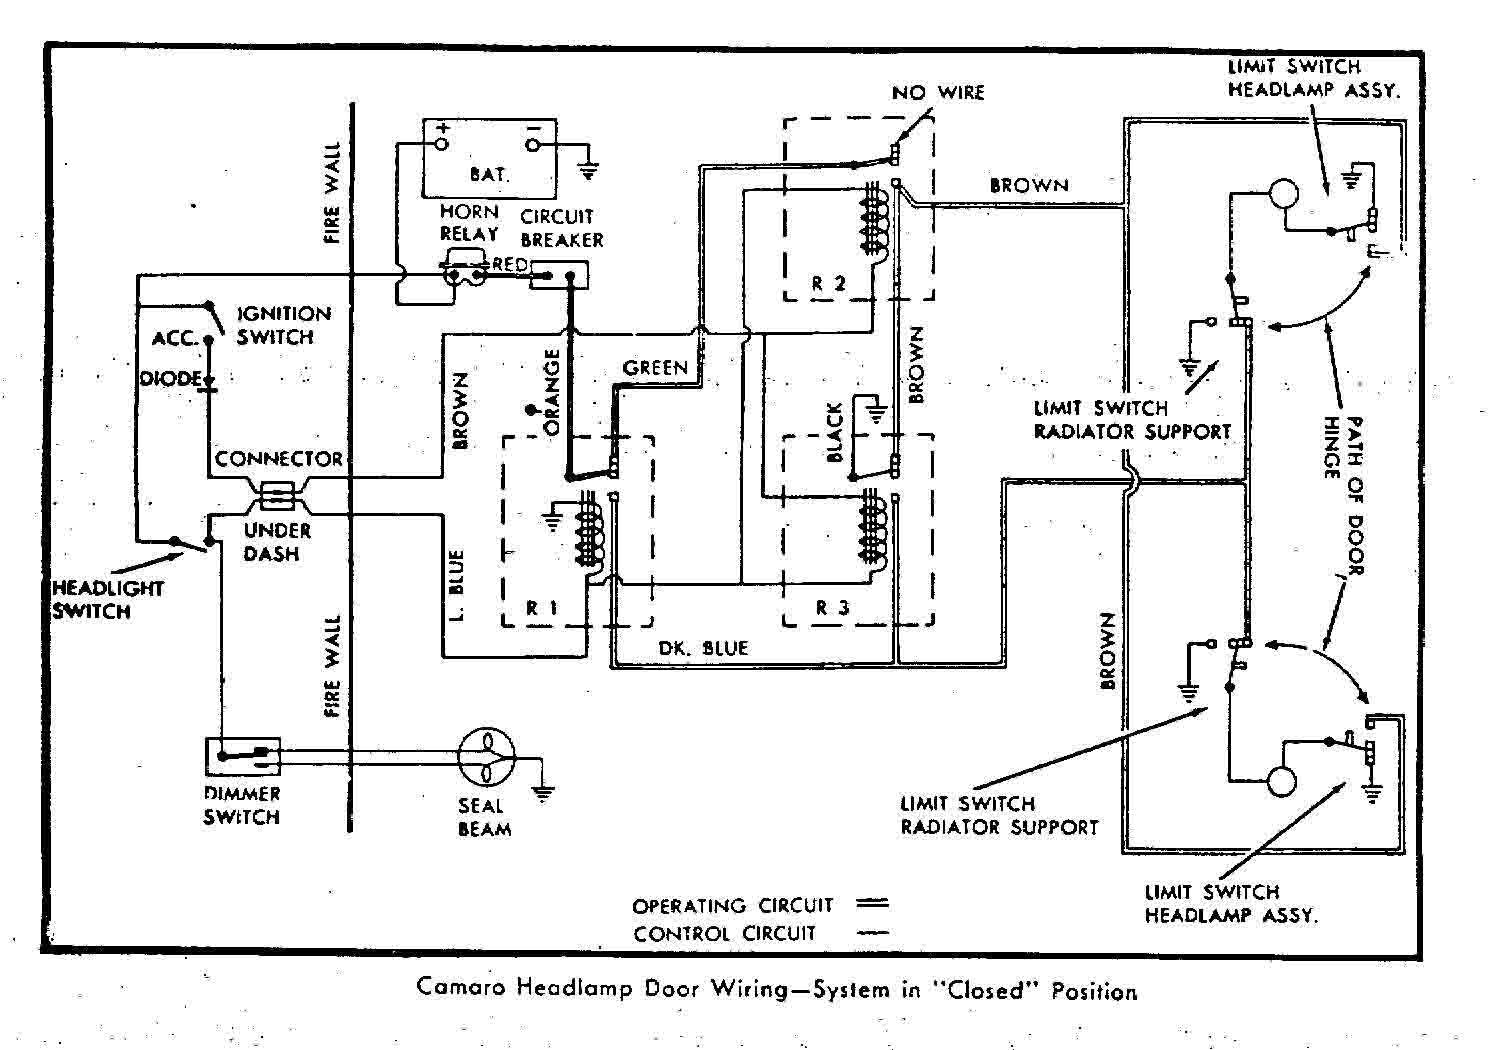 hight resolution of 1968 camaro wiring diagram fuel images gallery